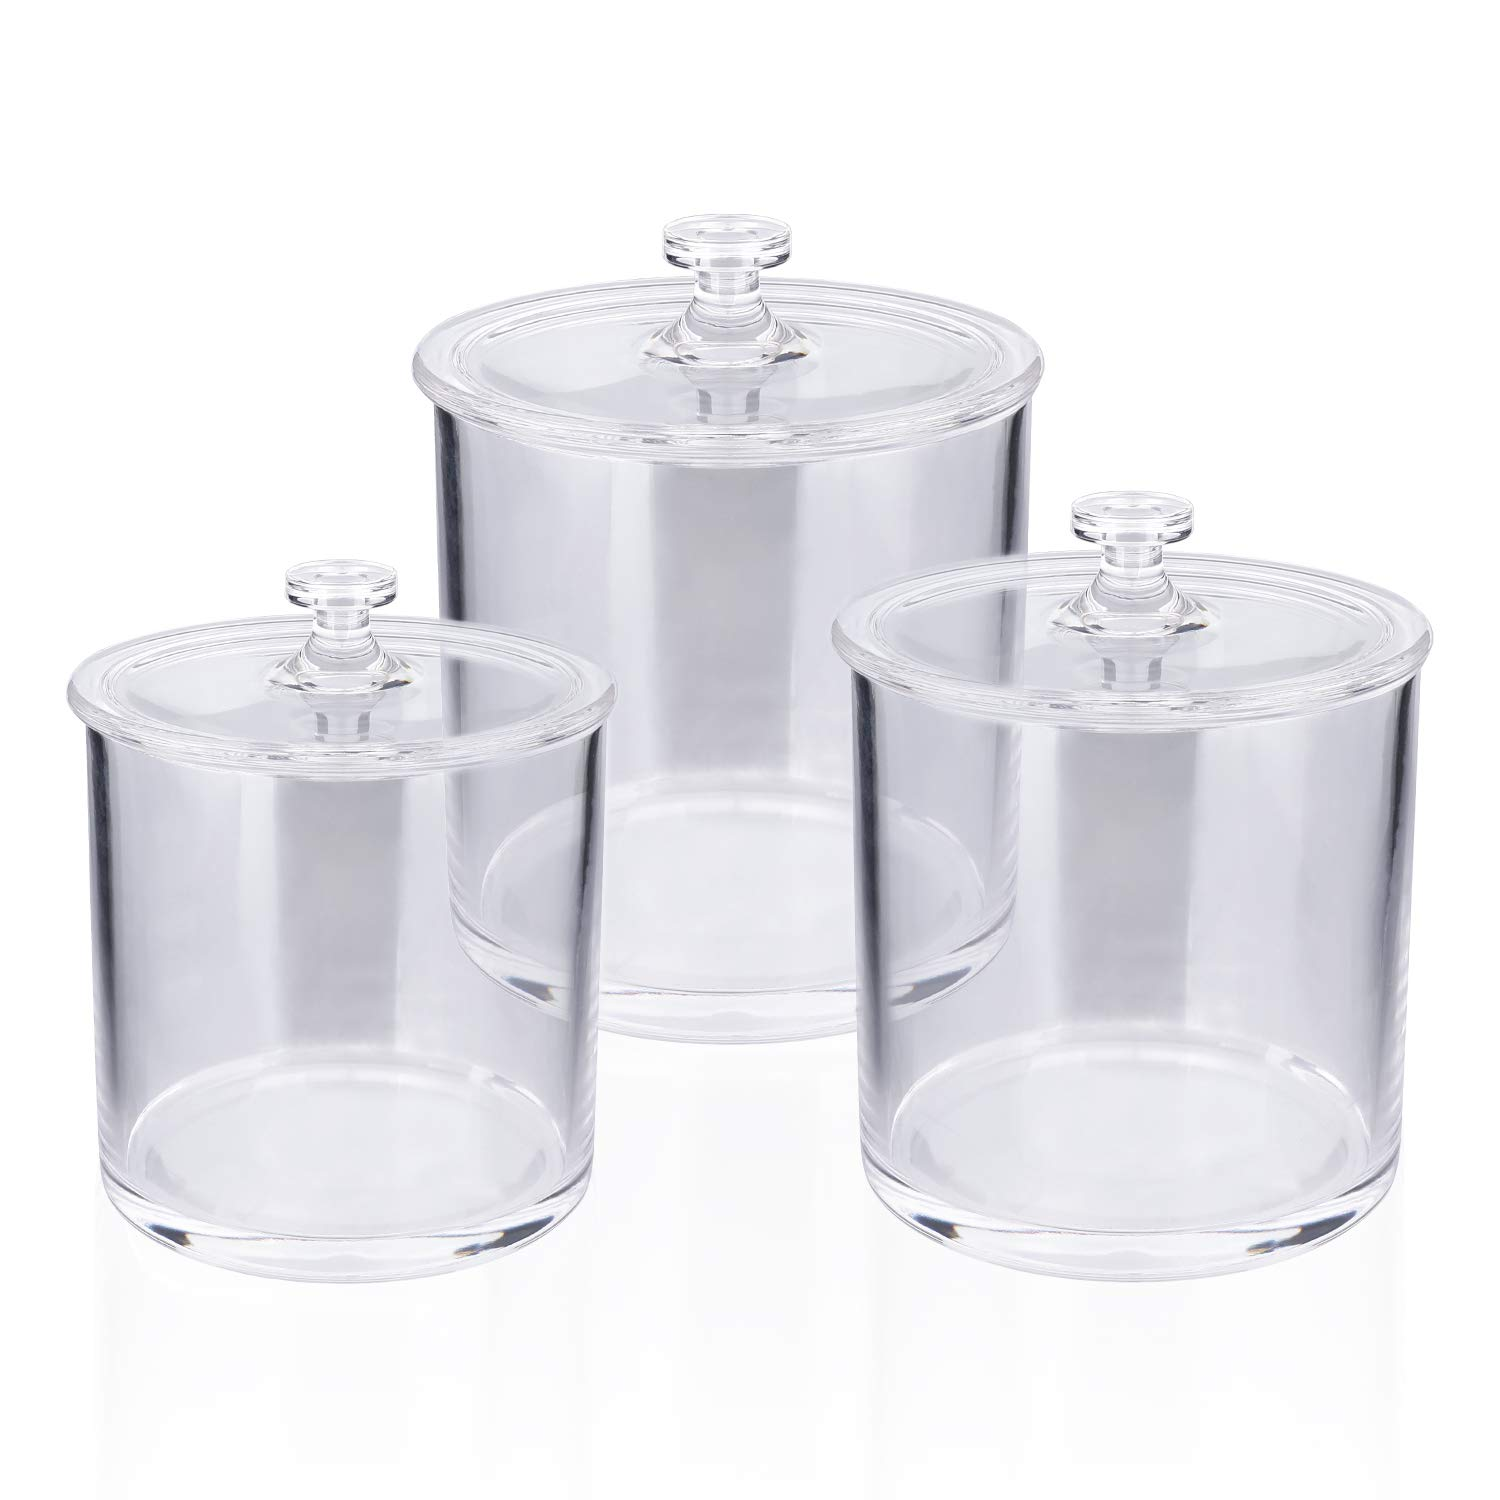 MUCH Premium Acrylic Apothecary Jars Clear Plastic Bathroom Canisters with Lid Storage Organizer for Cotton Ball Swab Q-Tips Rounds Bath Bomb Salts (Set of 3)